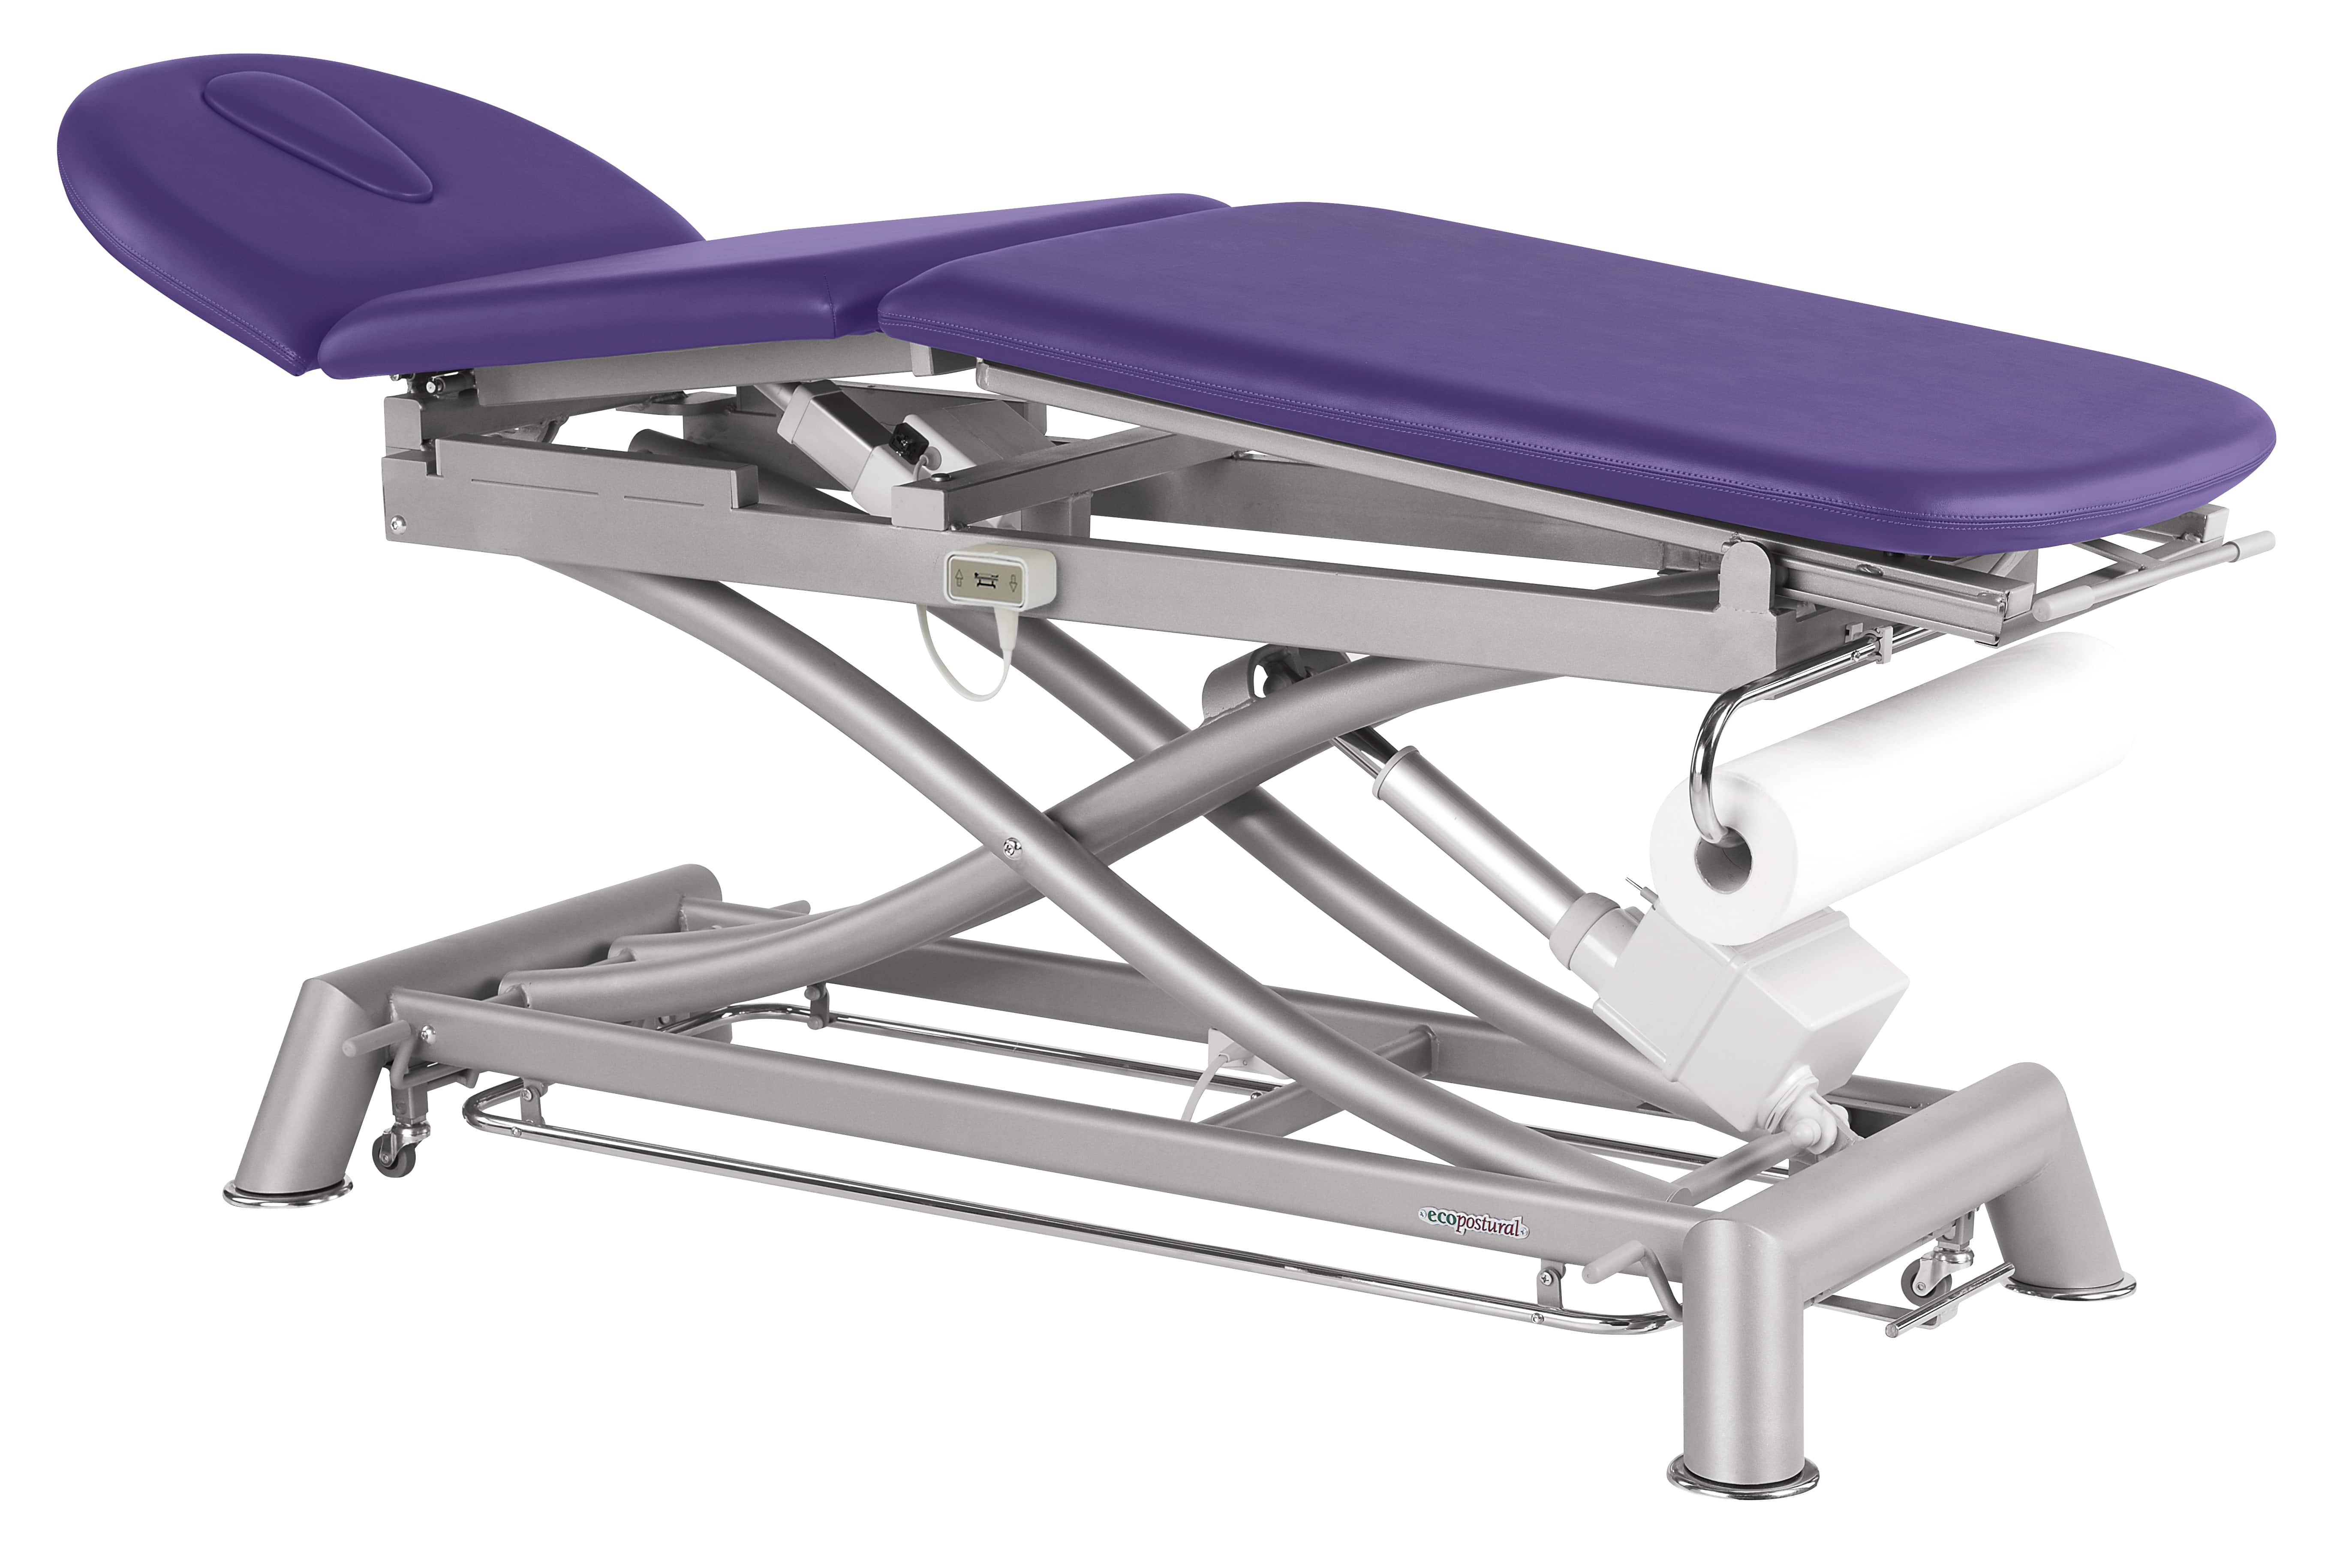 Awesome Electric Massage Table In 3 Parts With Peripheral Bar Ecopostural C7921 Interior Design Ideas Helimdqseriescom